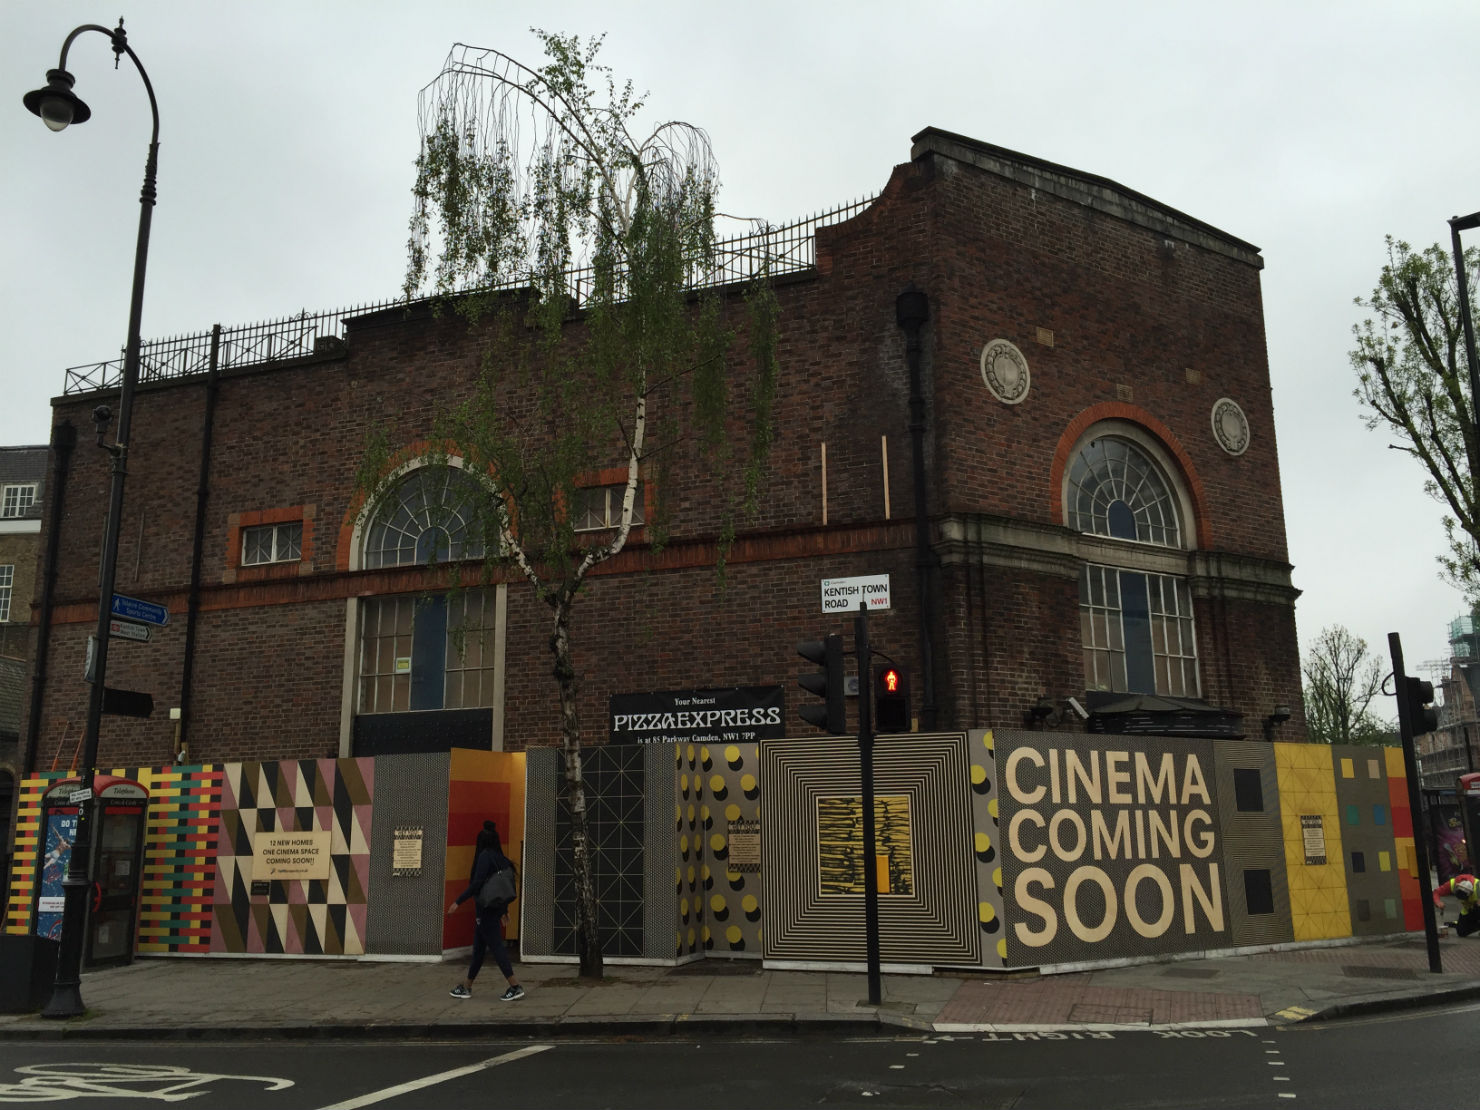 Nearly there? The cinema will open within the next six months. Photo: SE